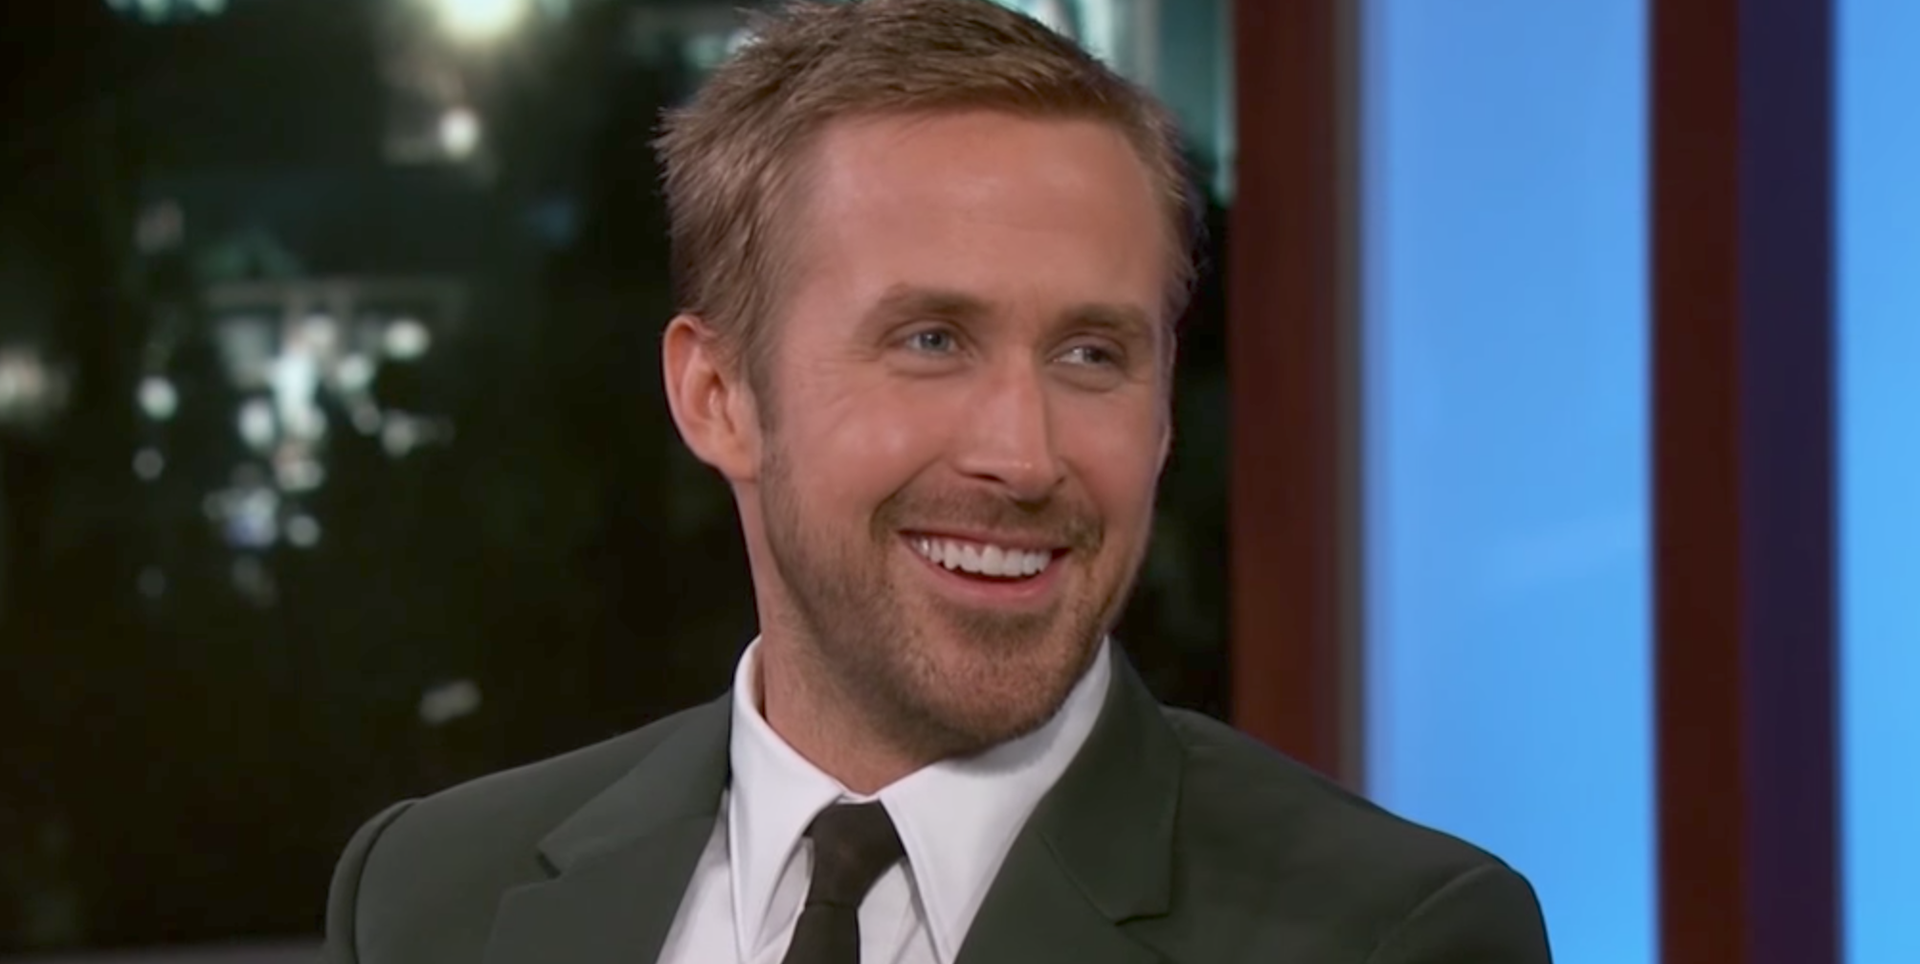 Doting Father Ryan Gosling's Got a Cute Story About His 1-Year-Old Daughter